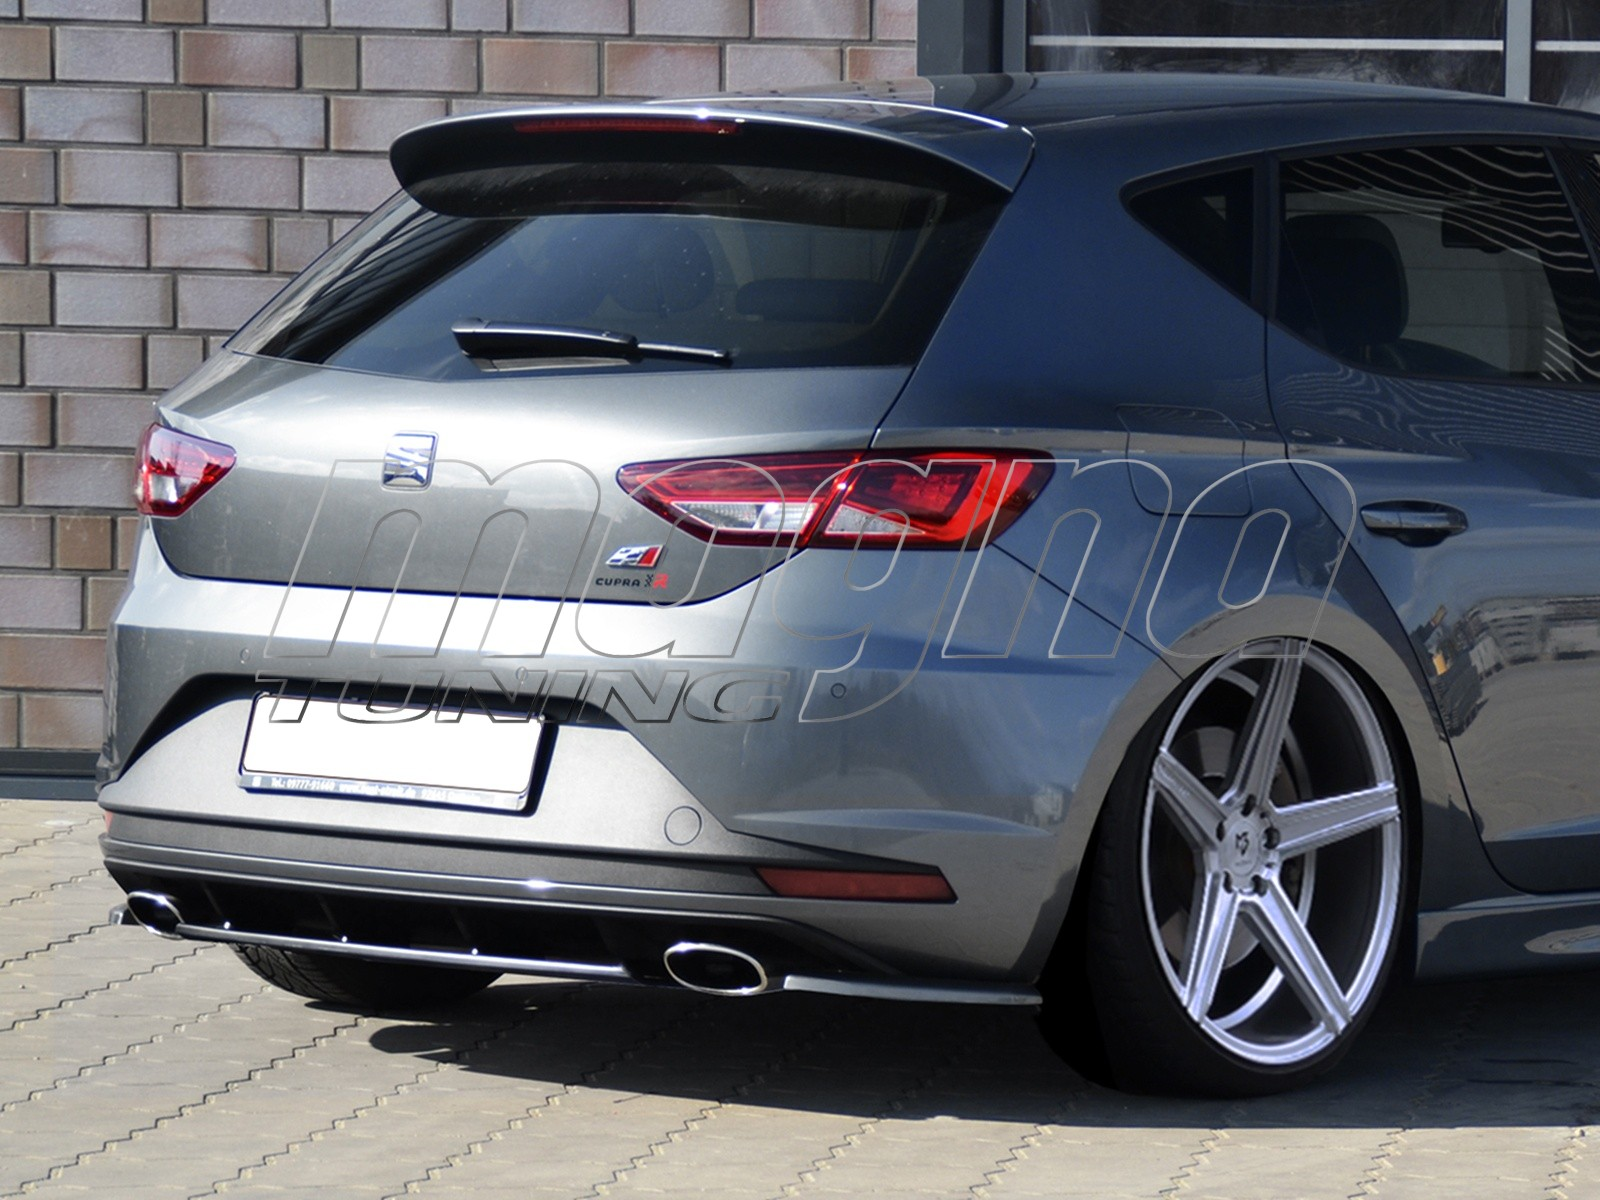 seat leon 5f cupra intenso rear bumper extension. Black Bedroom Furniture Sets. Home Design Ideas